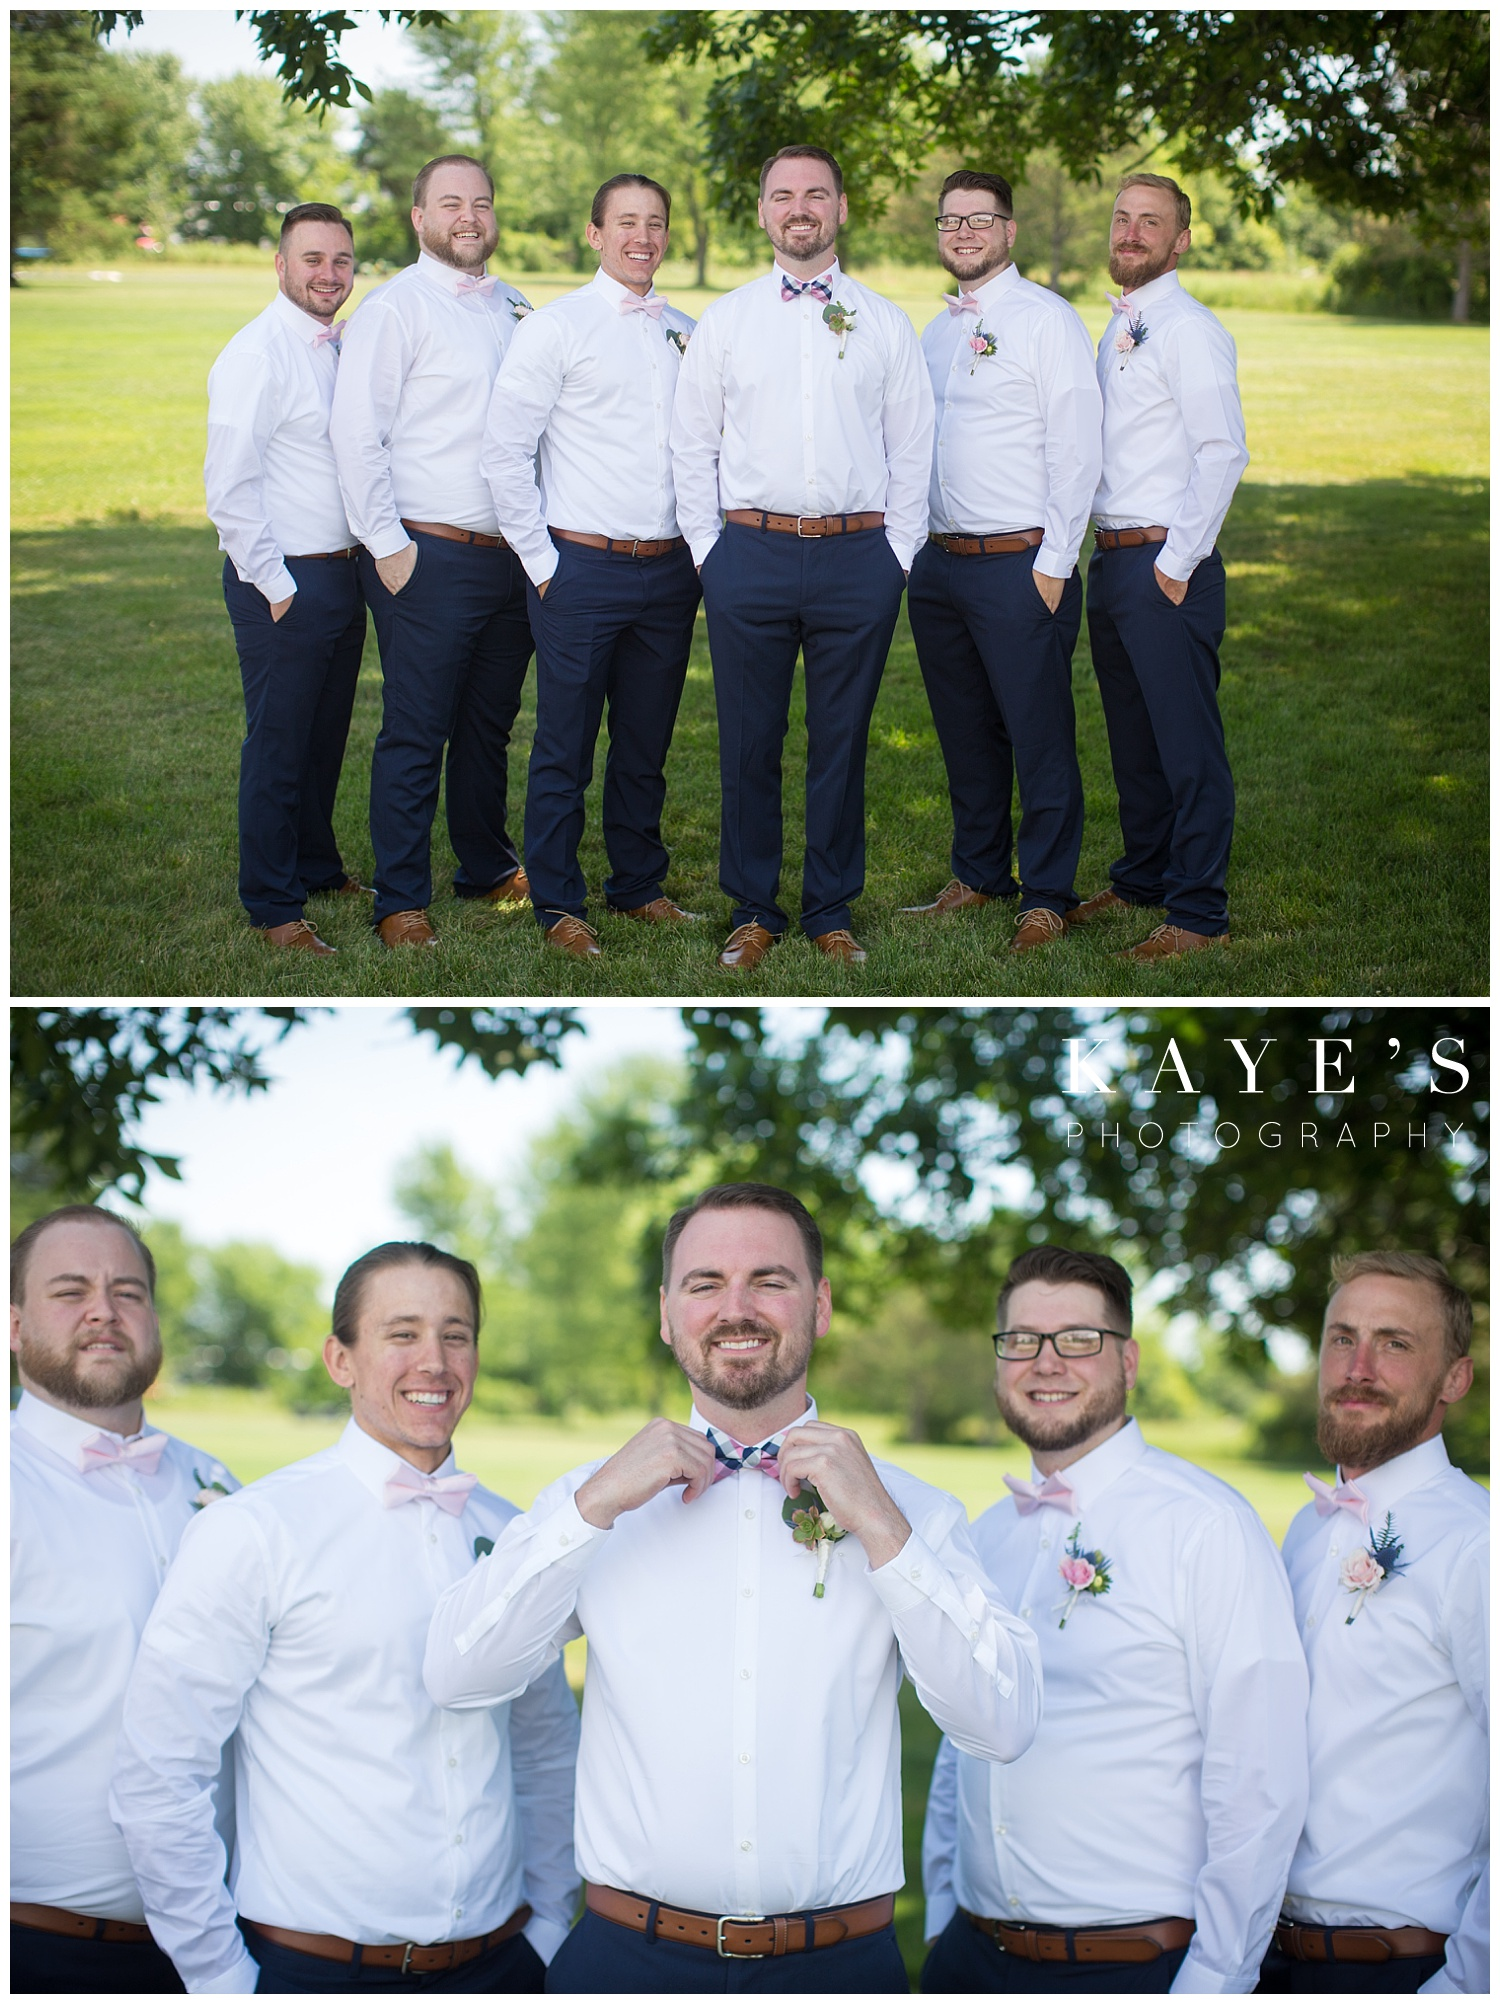 Groom with groomsmen during wedding photos before ceremony in davison